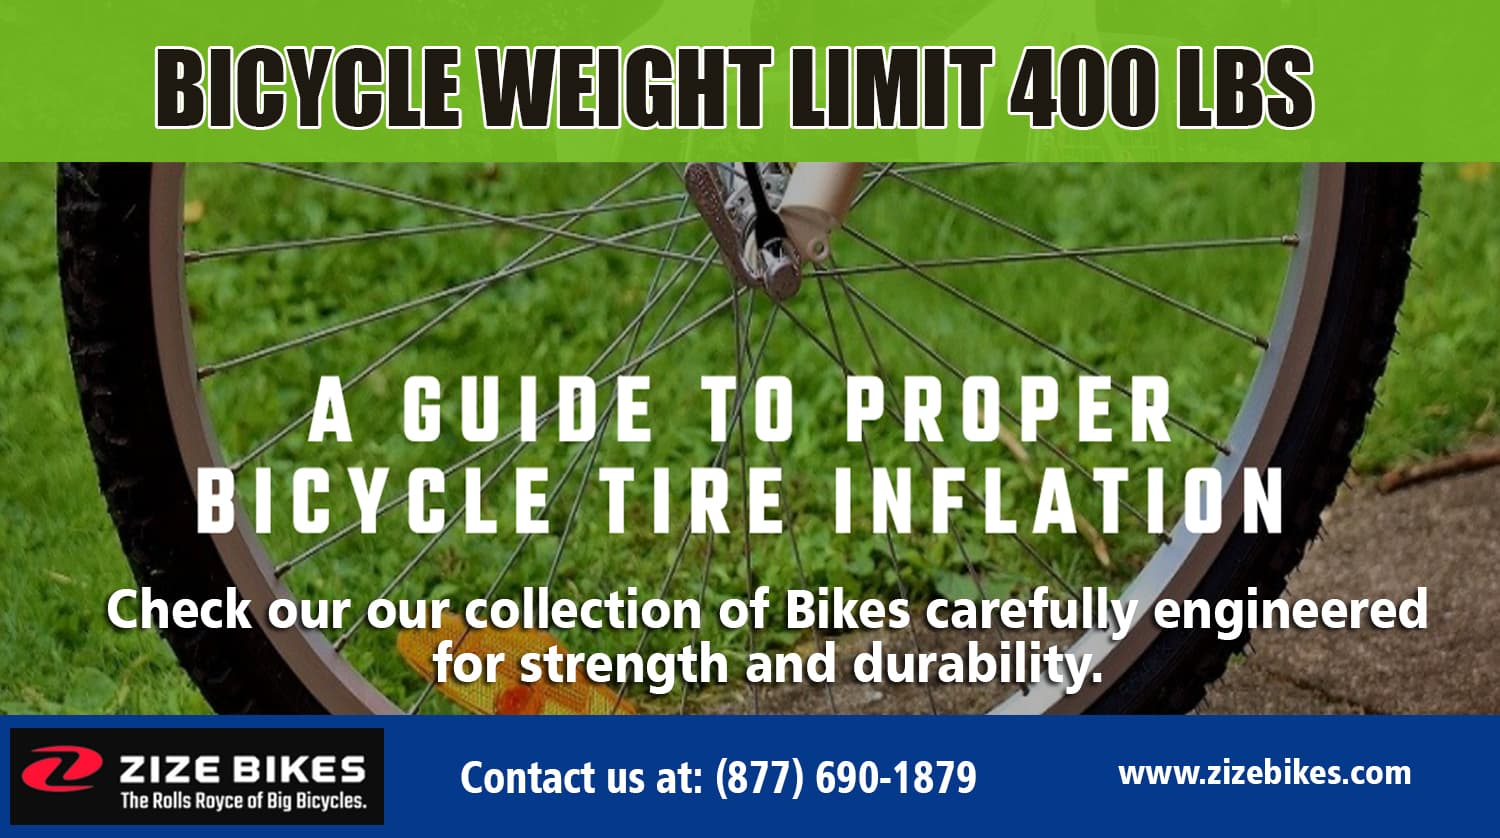 Bicycle weight limit 400 lbs